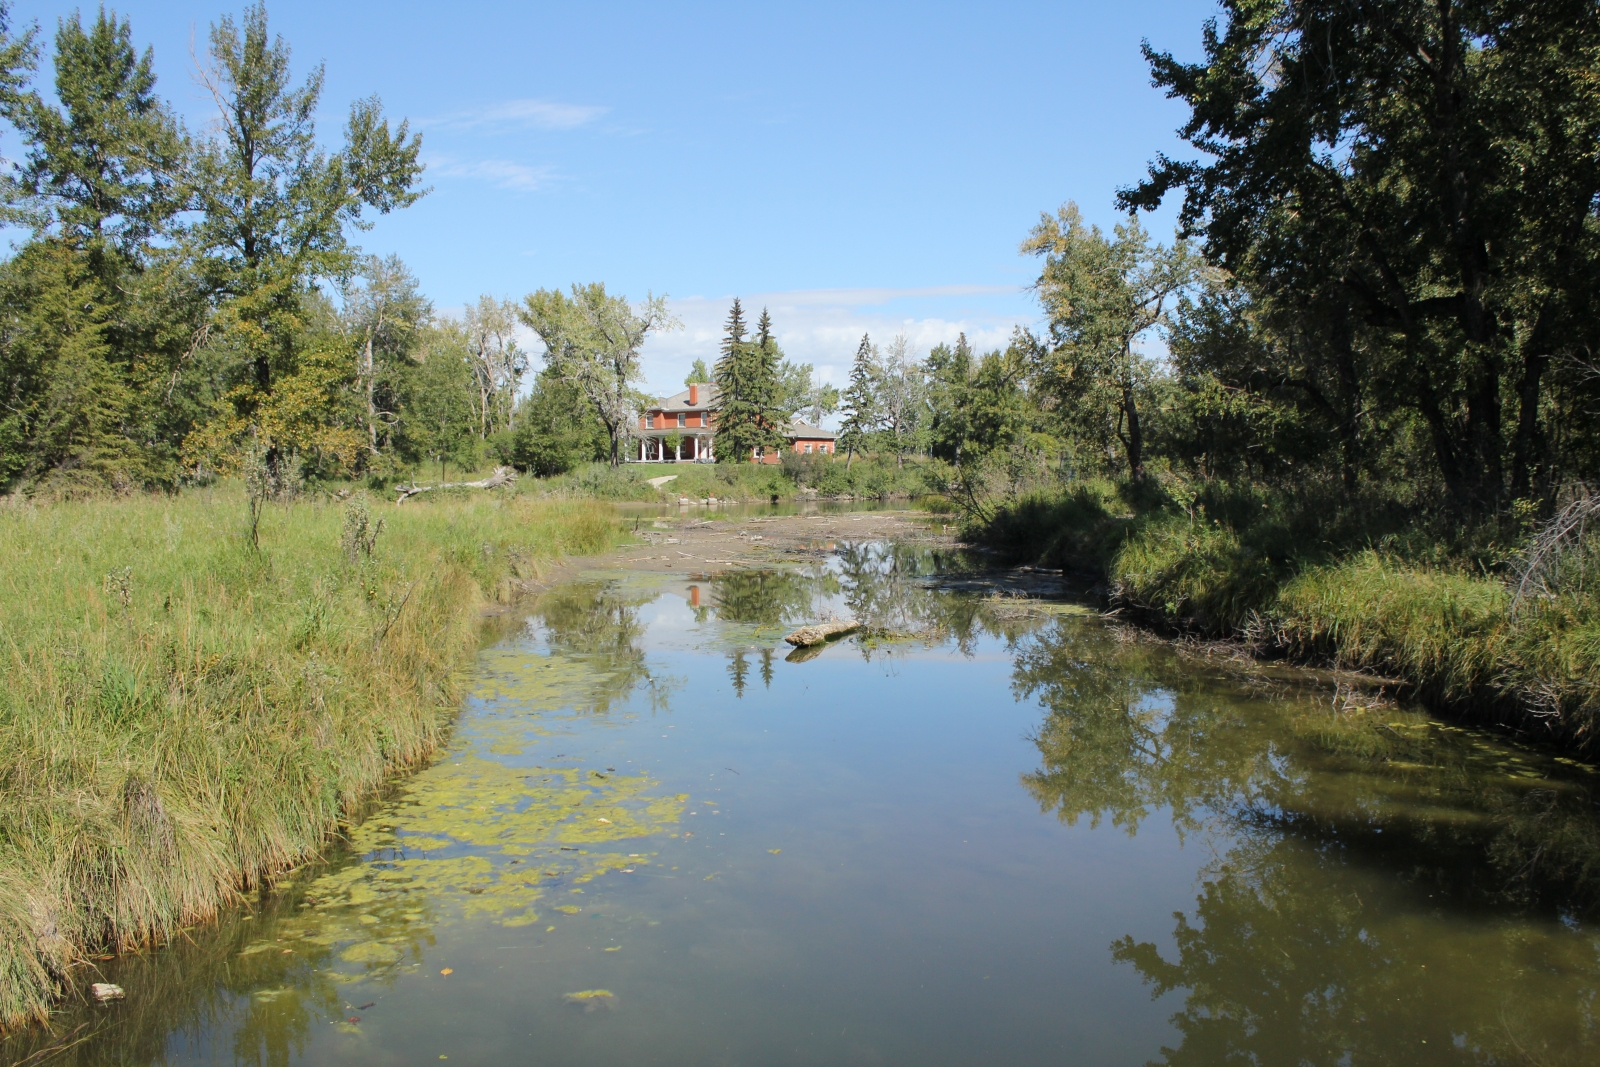 The Inglewood Bird Sanctuary is open to the public year round and currently has two trails reopened since the 2013 flood.